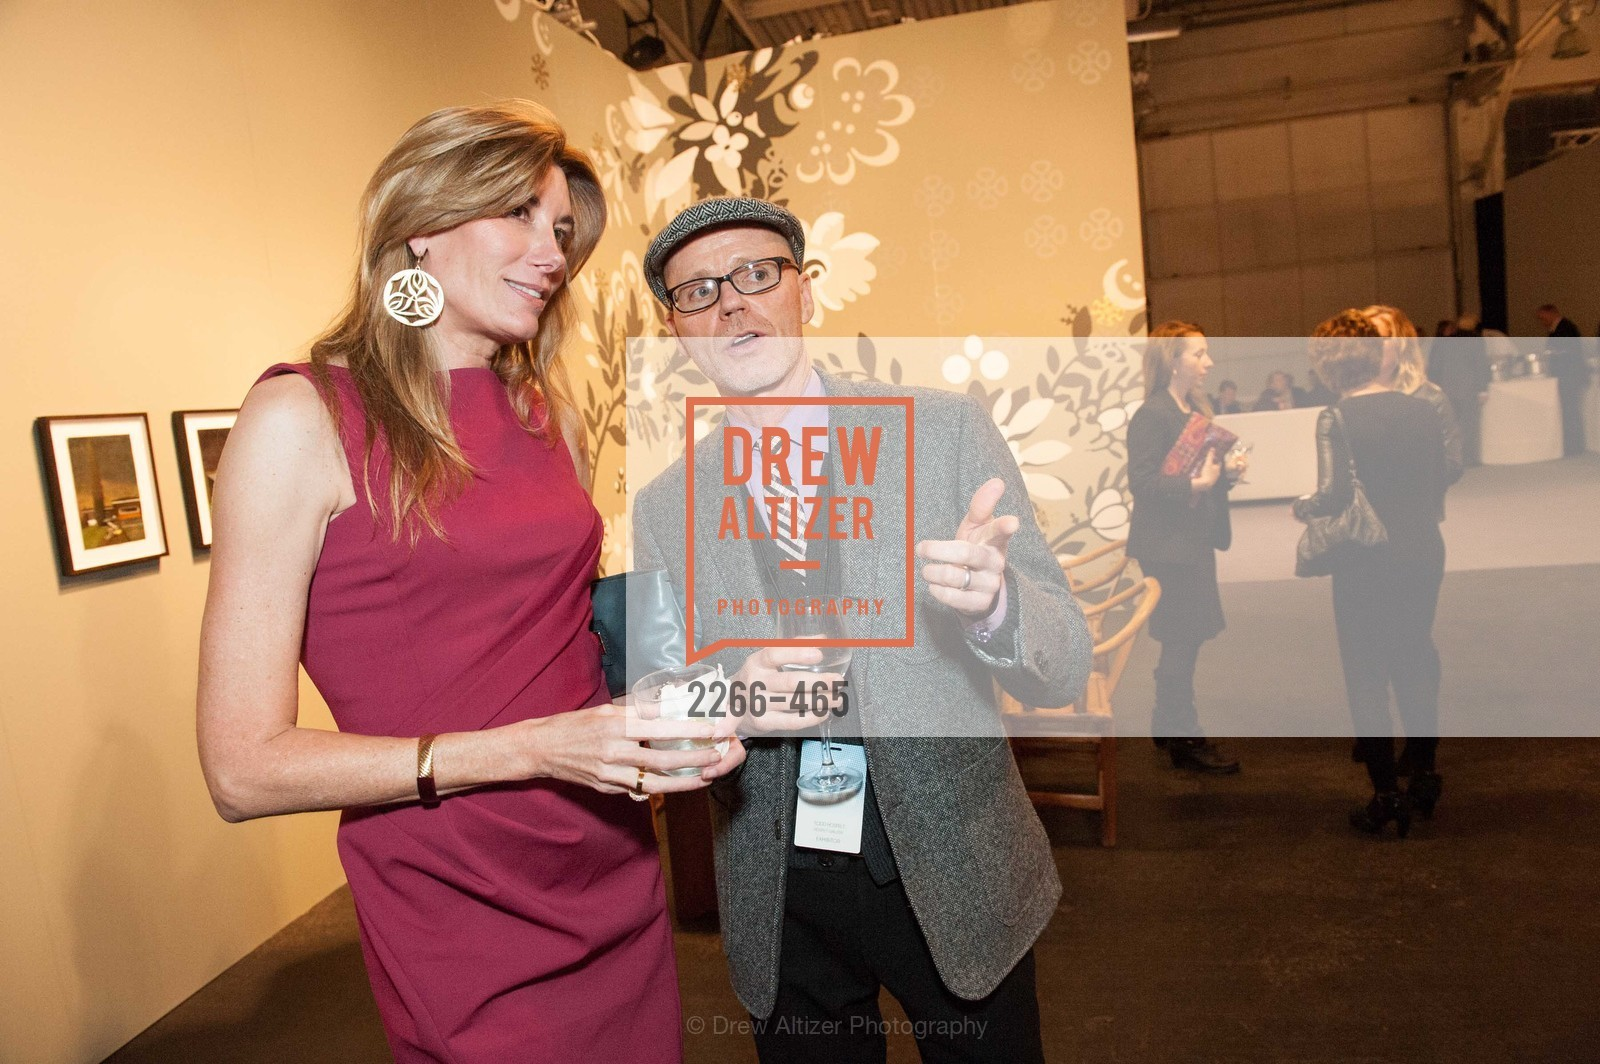 Susan Dunlevy, Todd Hosfelt, FOG Design + Art Preview Gala, US. US, January 16th, 2014,Drew Altizer, Drew Altizer Photography, full-service agency, private events, San Francisco photographer, photographer california